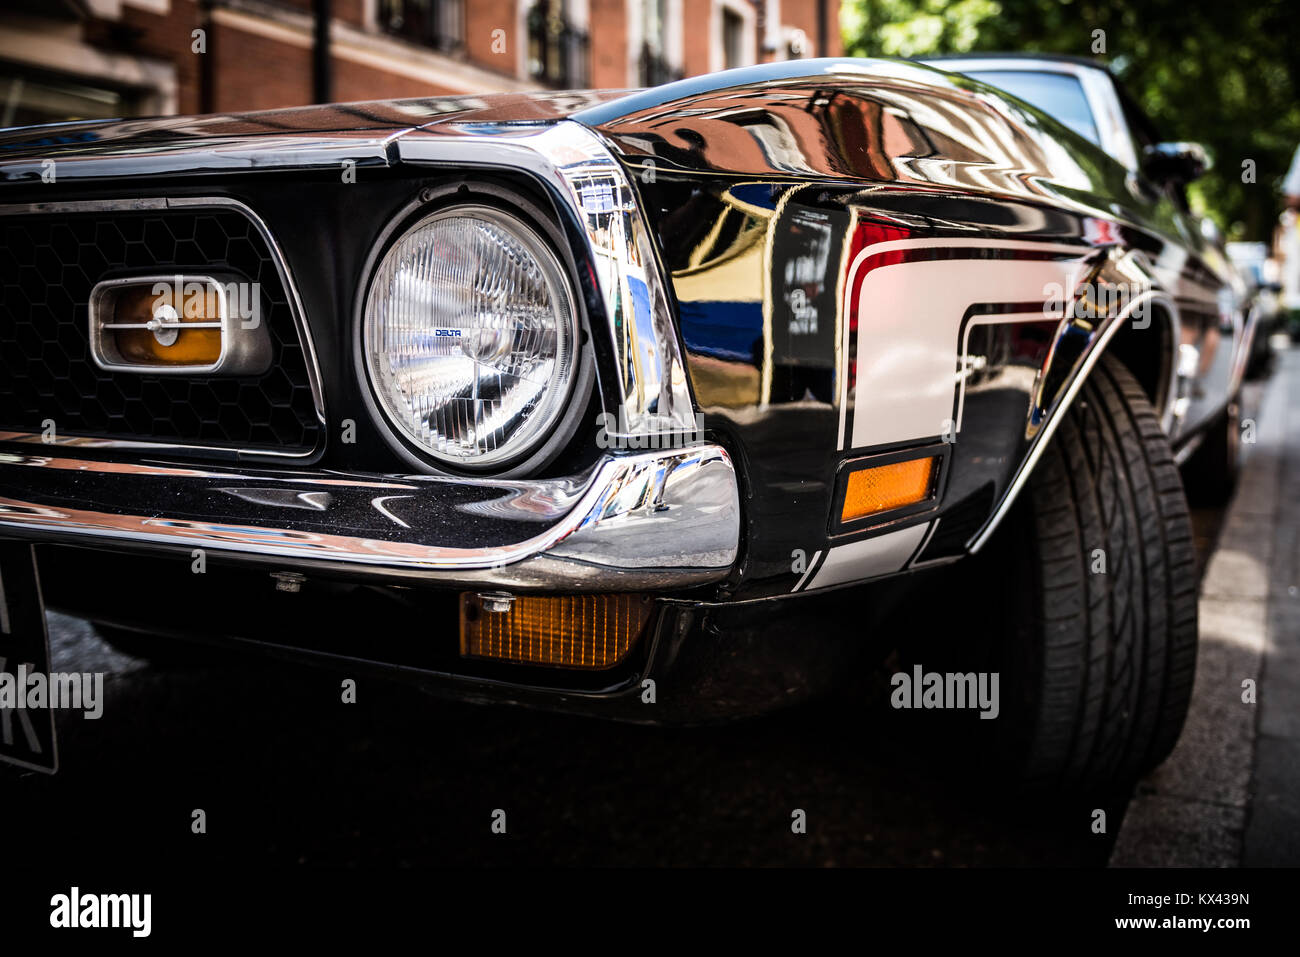 Ford mustang parked on a London street Stock Photo